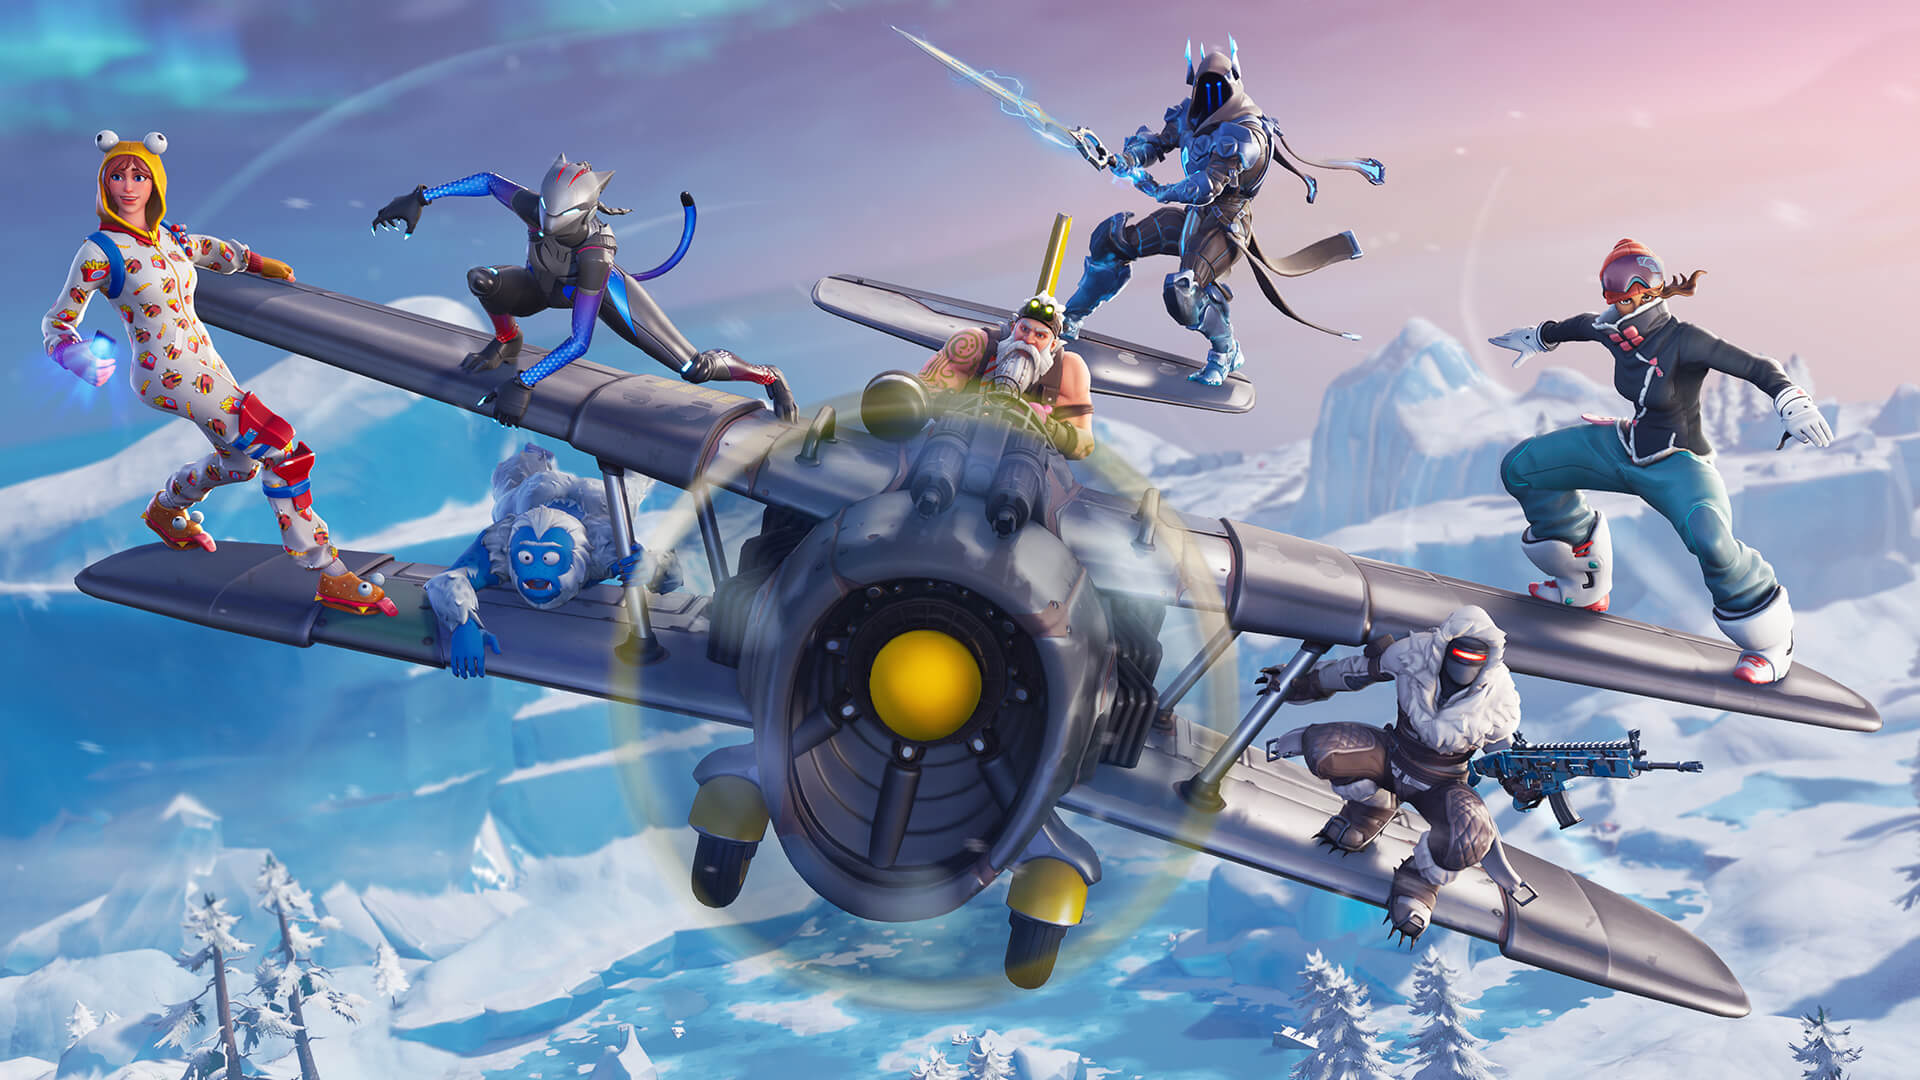 The Week 2 challenges are now live in Season 7 of Fortnite